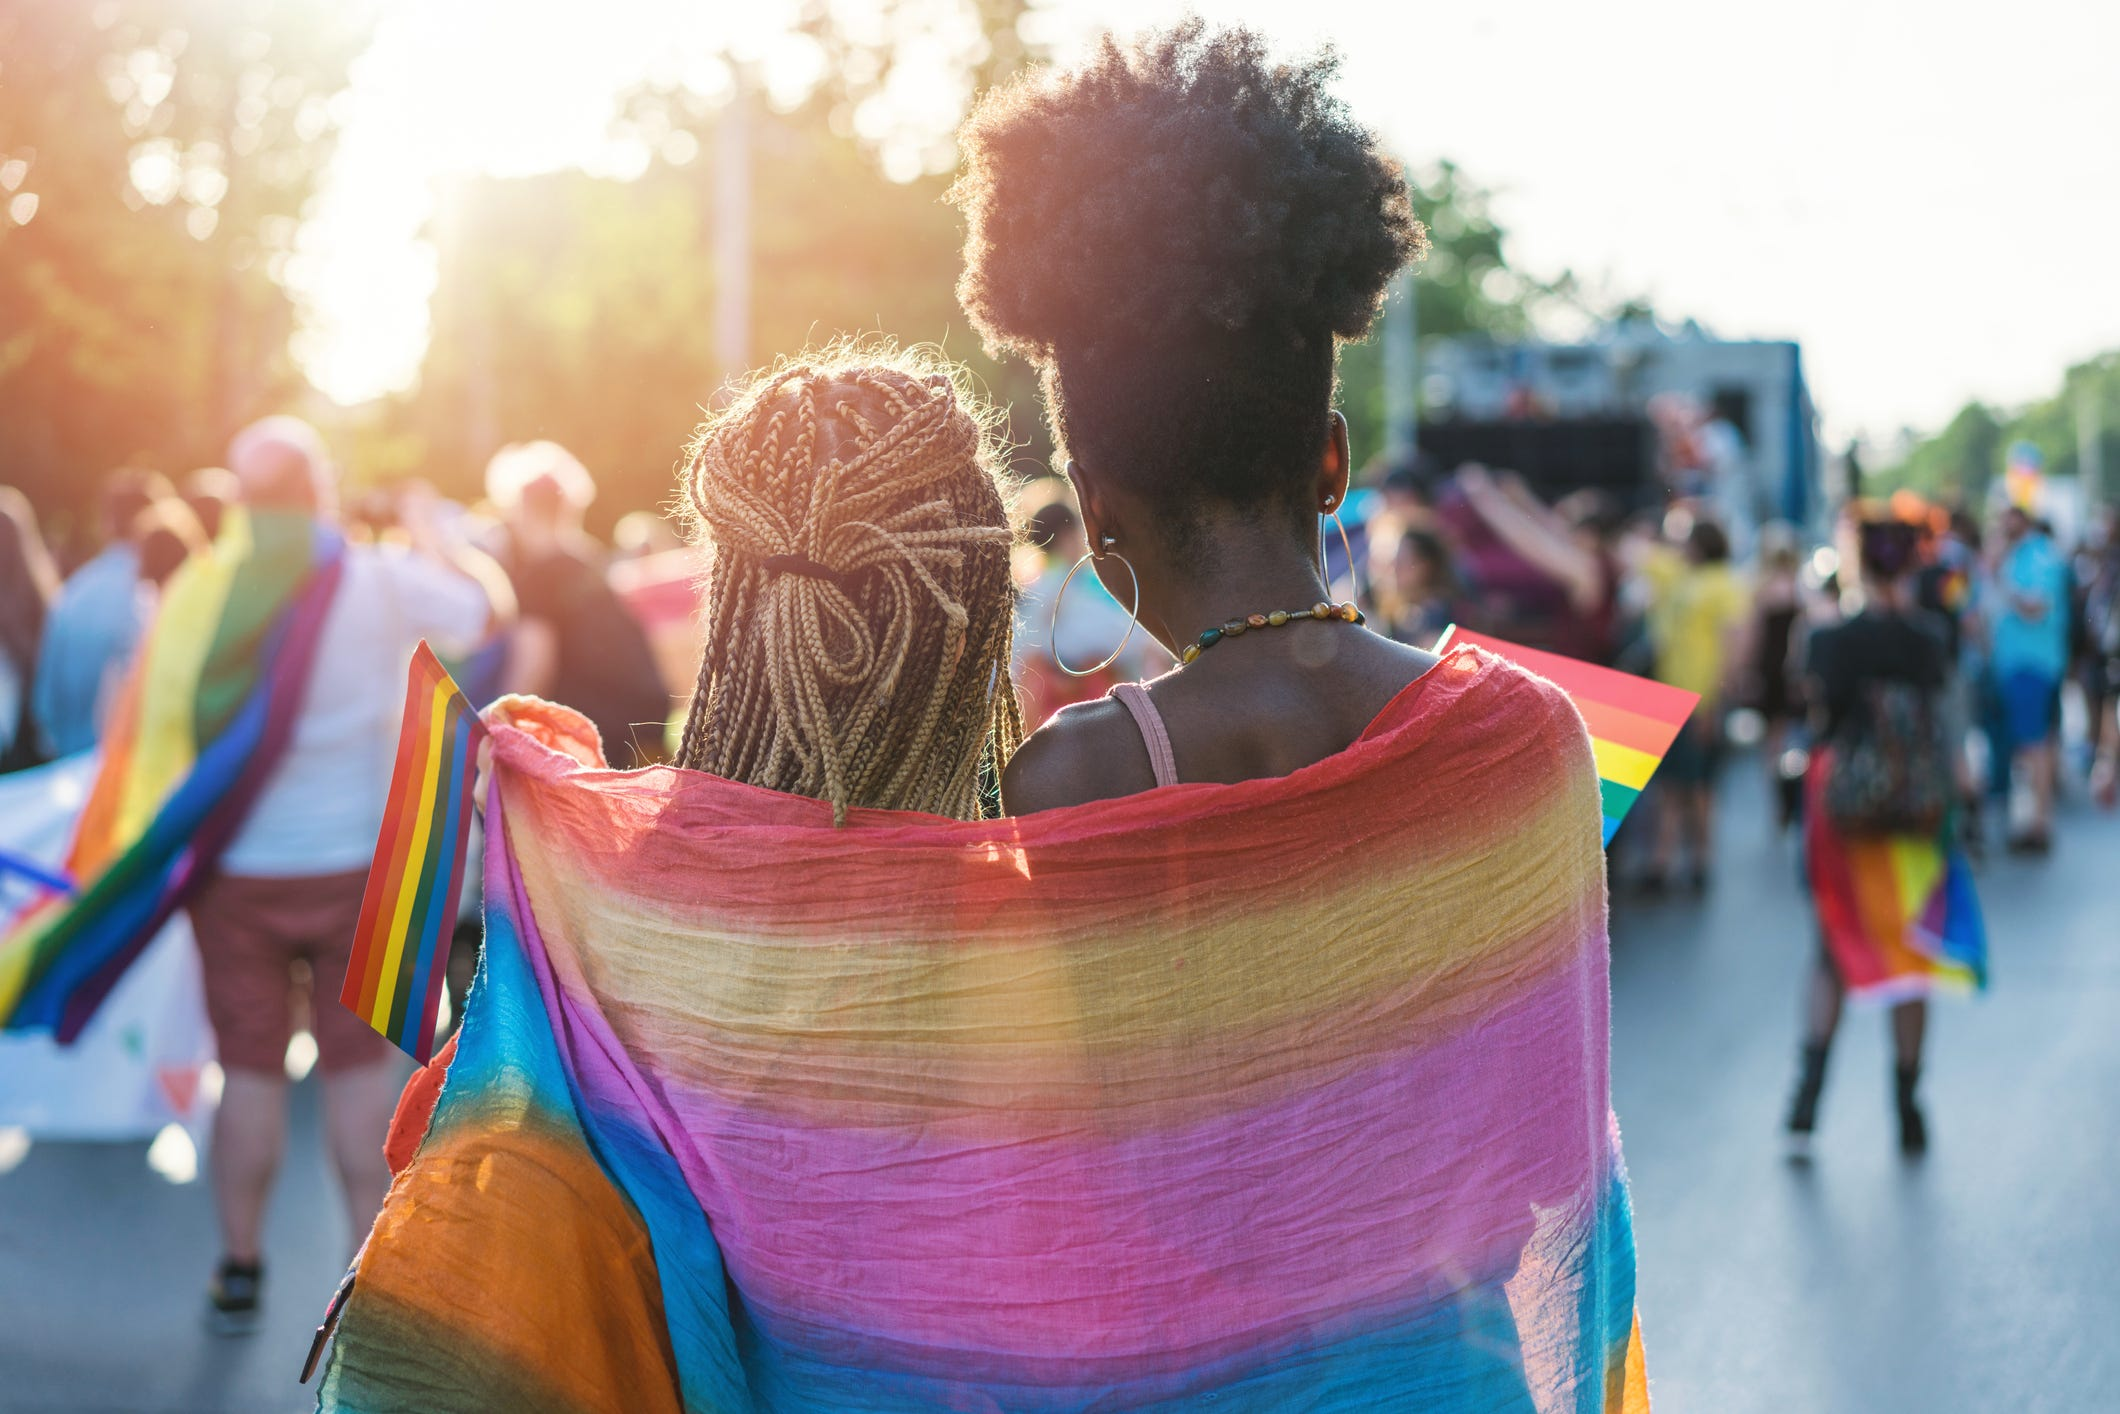 Is coming out as a member of the LGBTQ community over? No, but it could be someday.